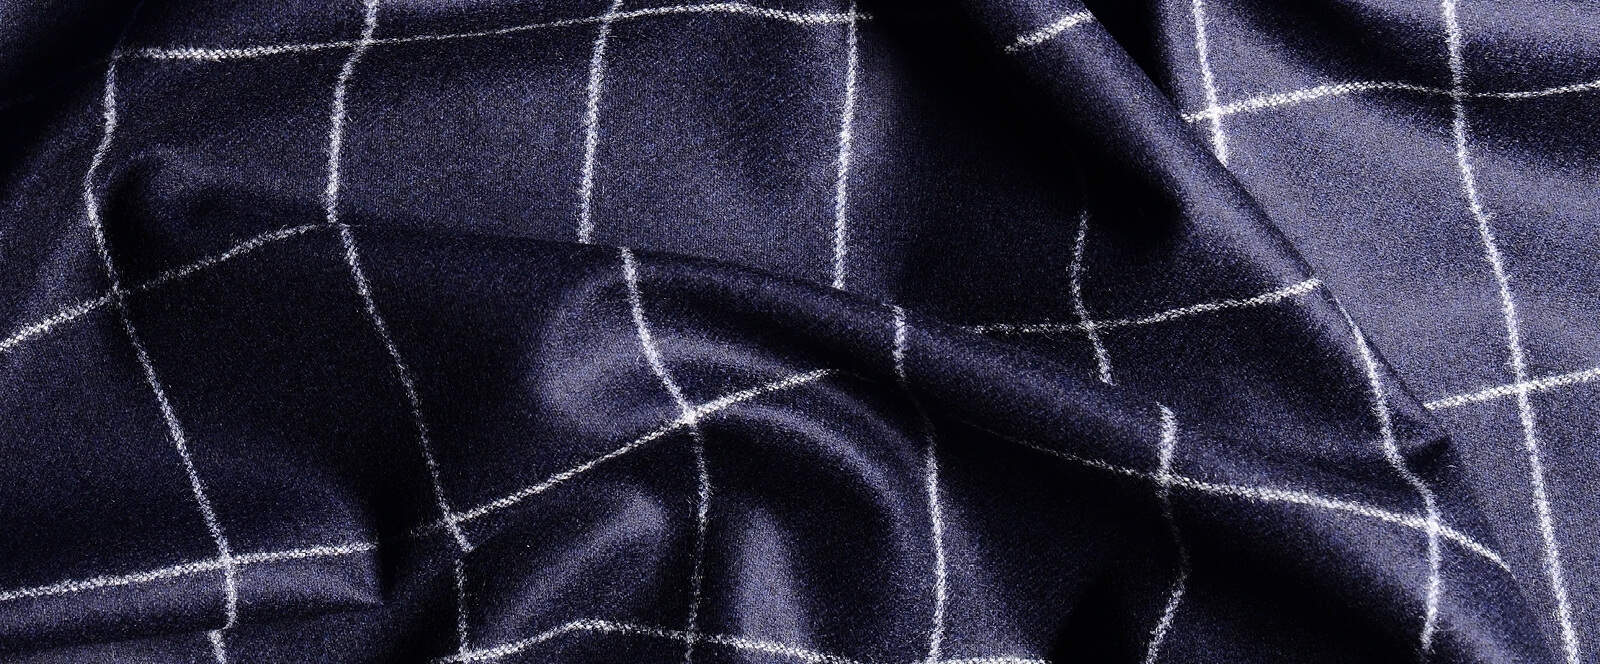 Flannel The Original Woolen Fall Fabric Gentlemans Gazette Flanel Navy Blue Woollen Carded With Windowpanes